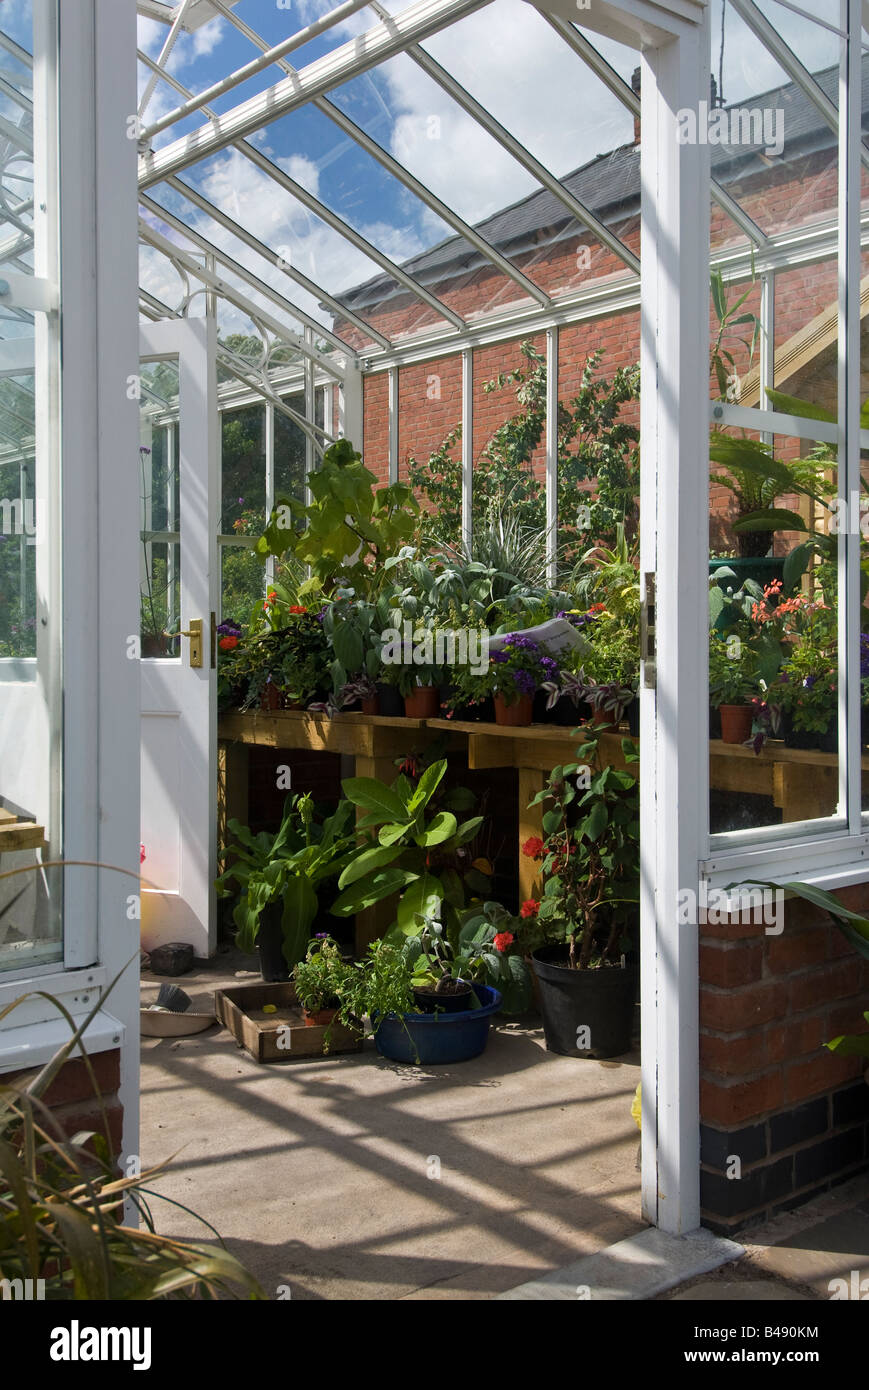 Pot plants on benches in a greenhouse at Hill Close Victorian gardens. Warwick, UK - Stock Image